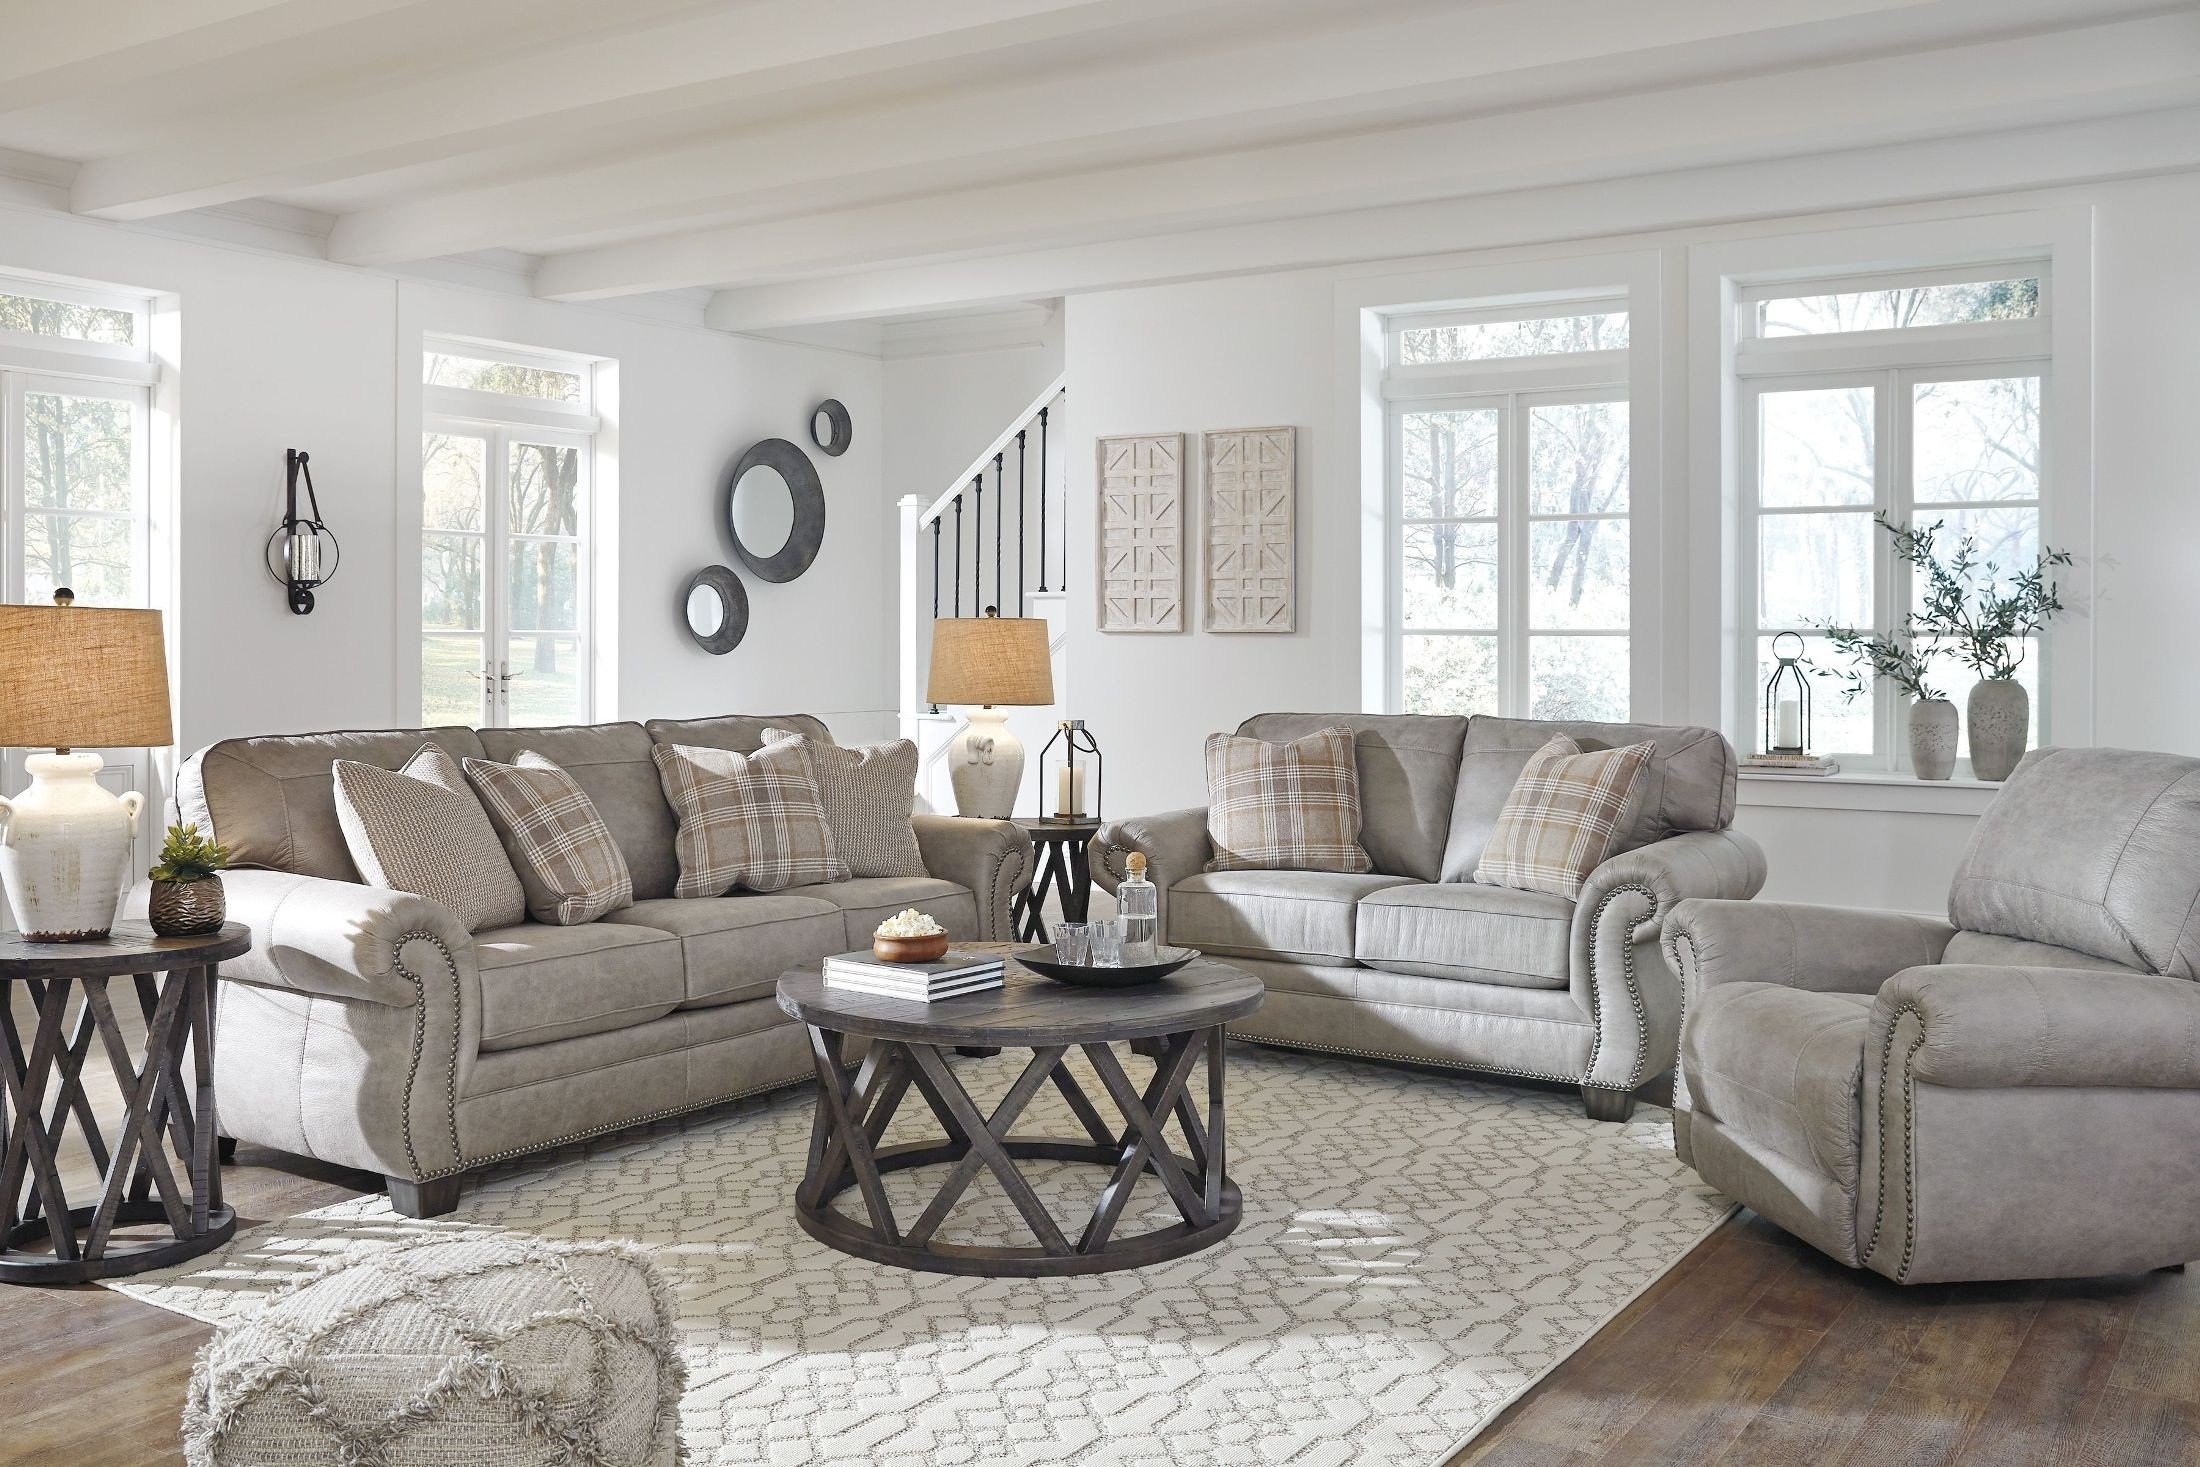 Olsberg Steel Living Room Set from Ashley | Coleman Furniture